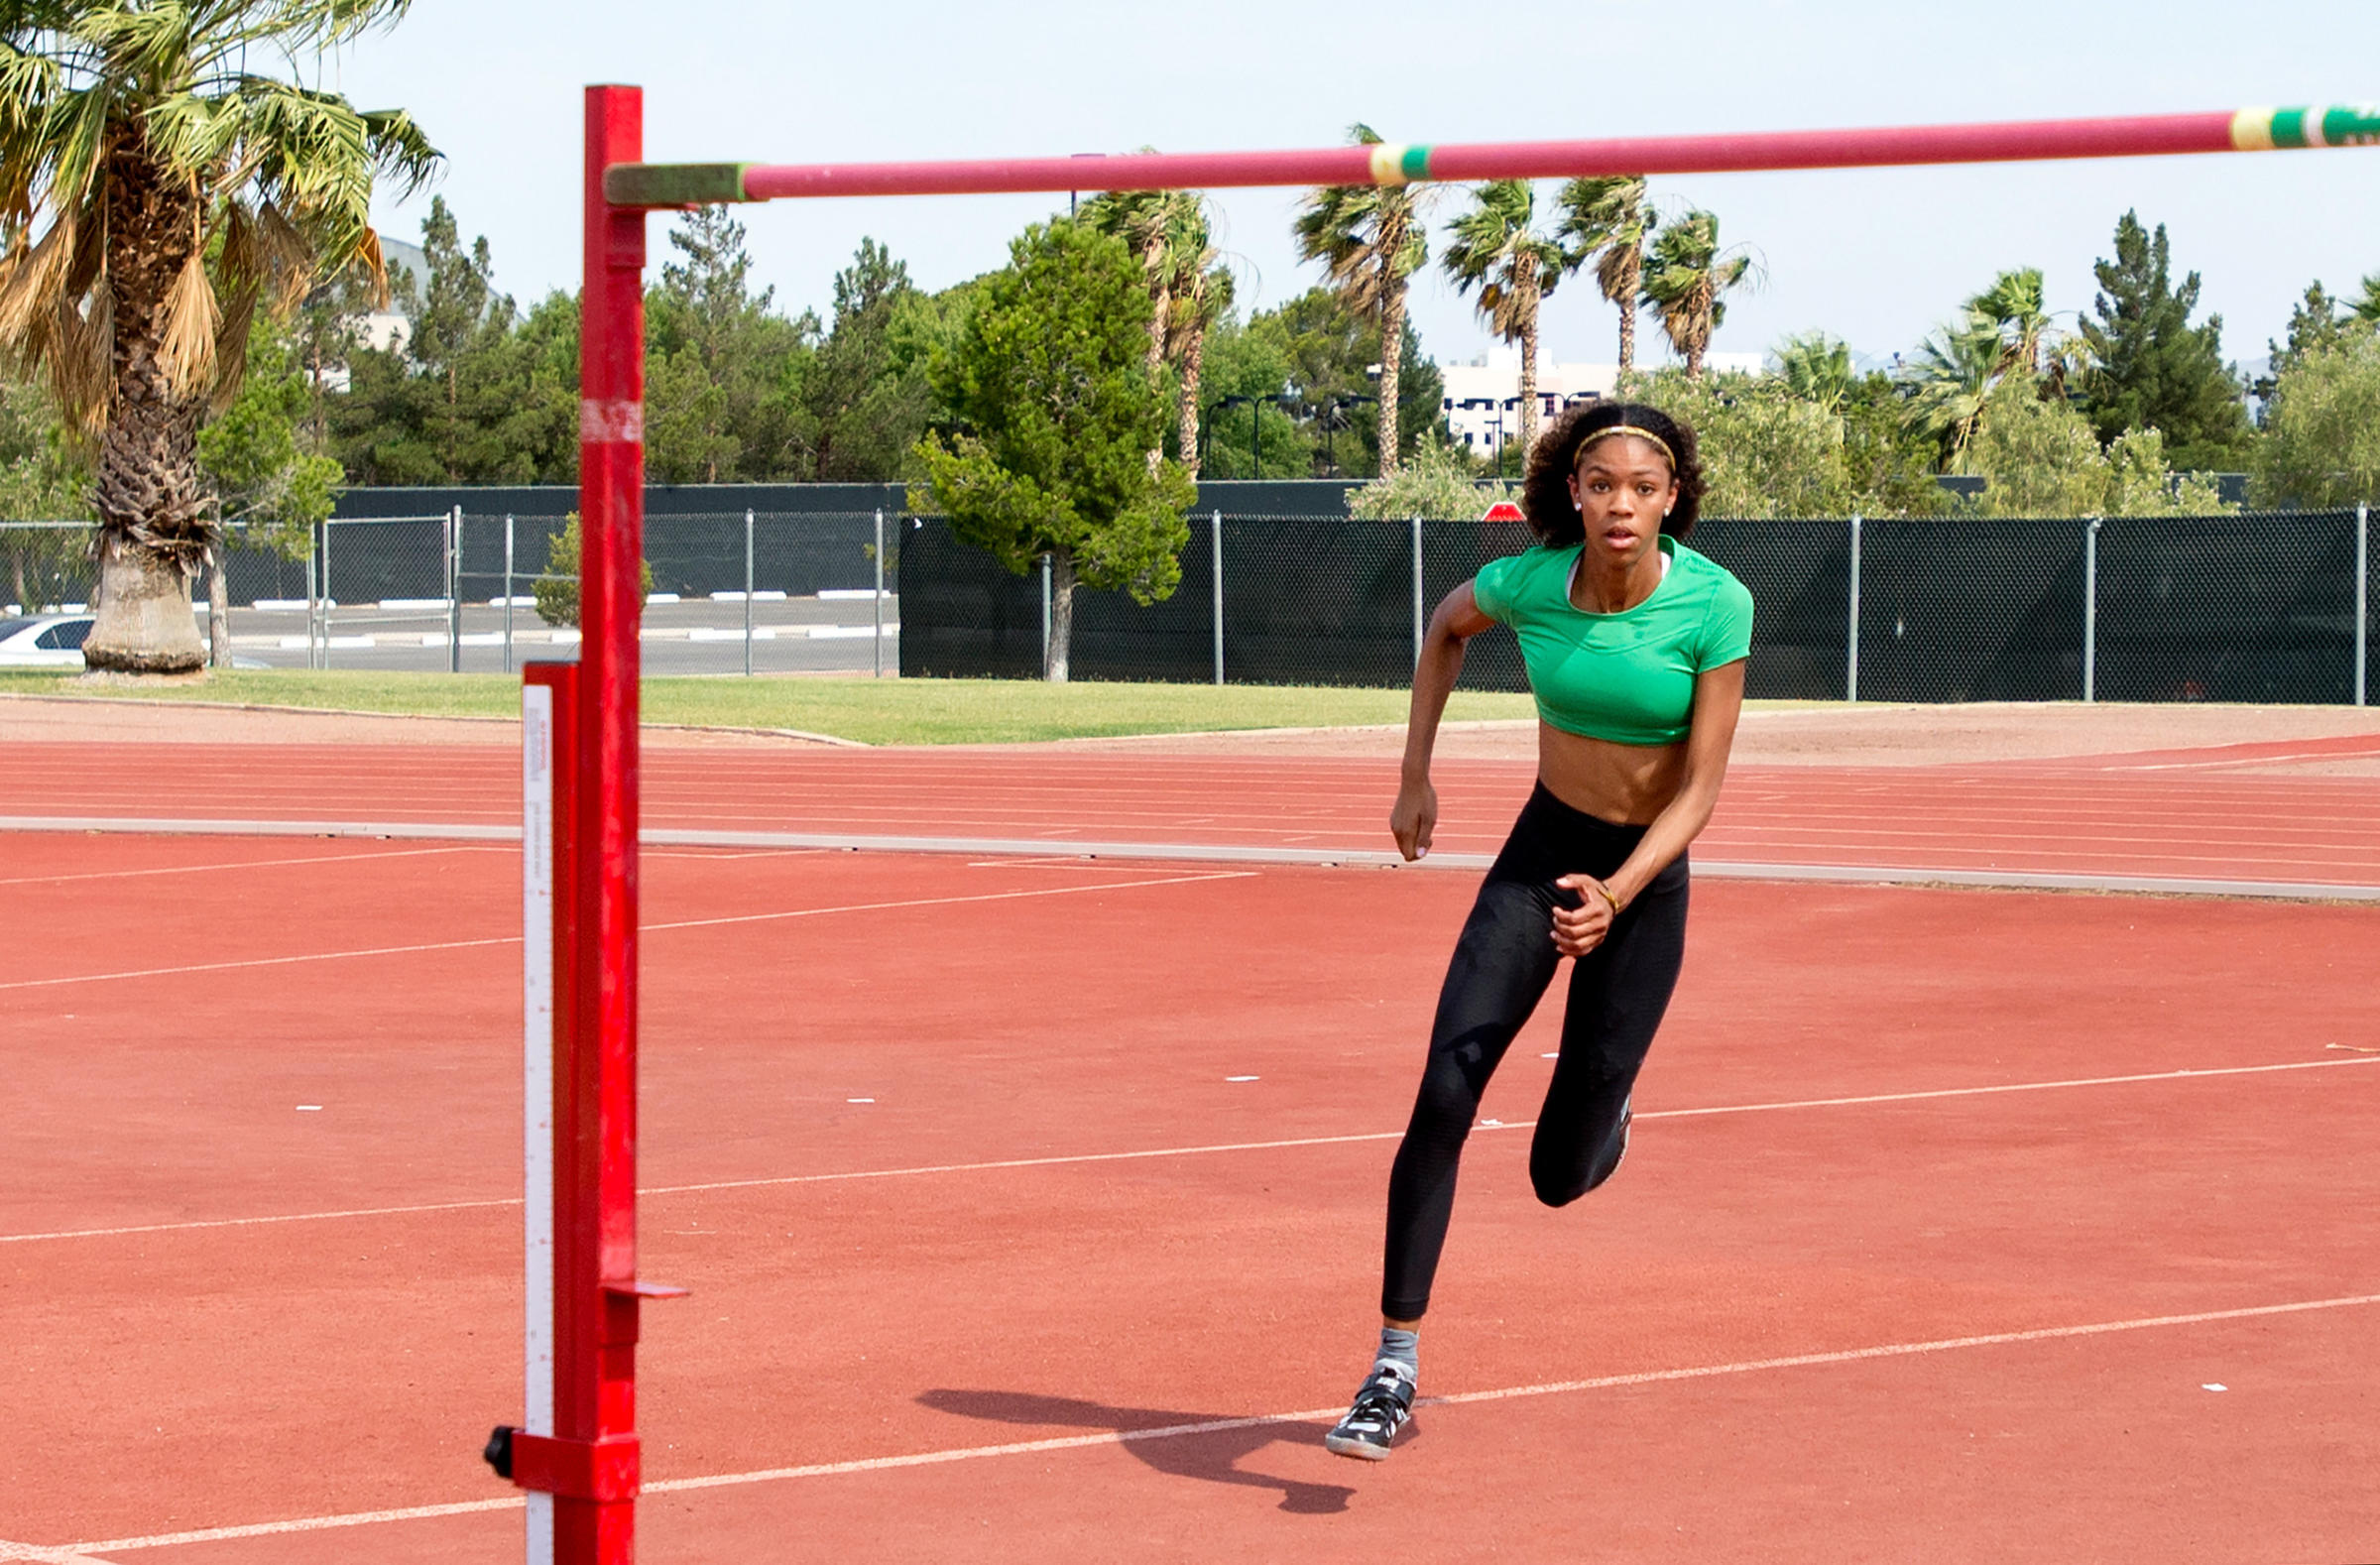 Randall Cunningham's Daughter Vashti Makes the Olympics